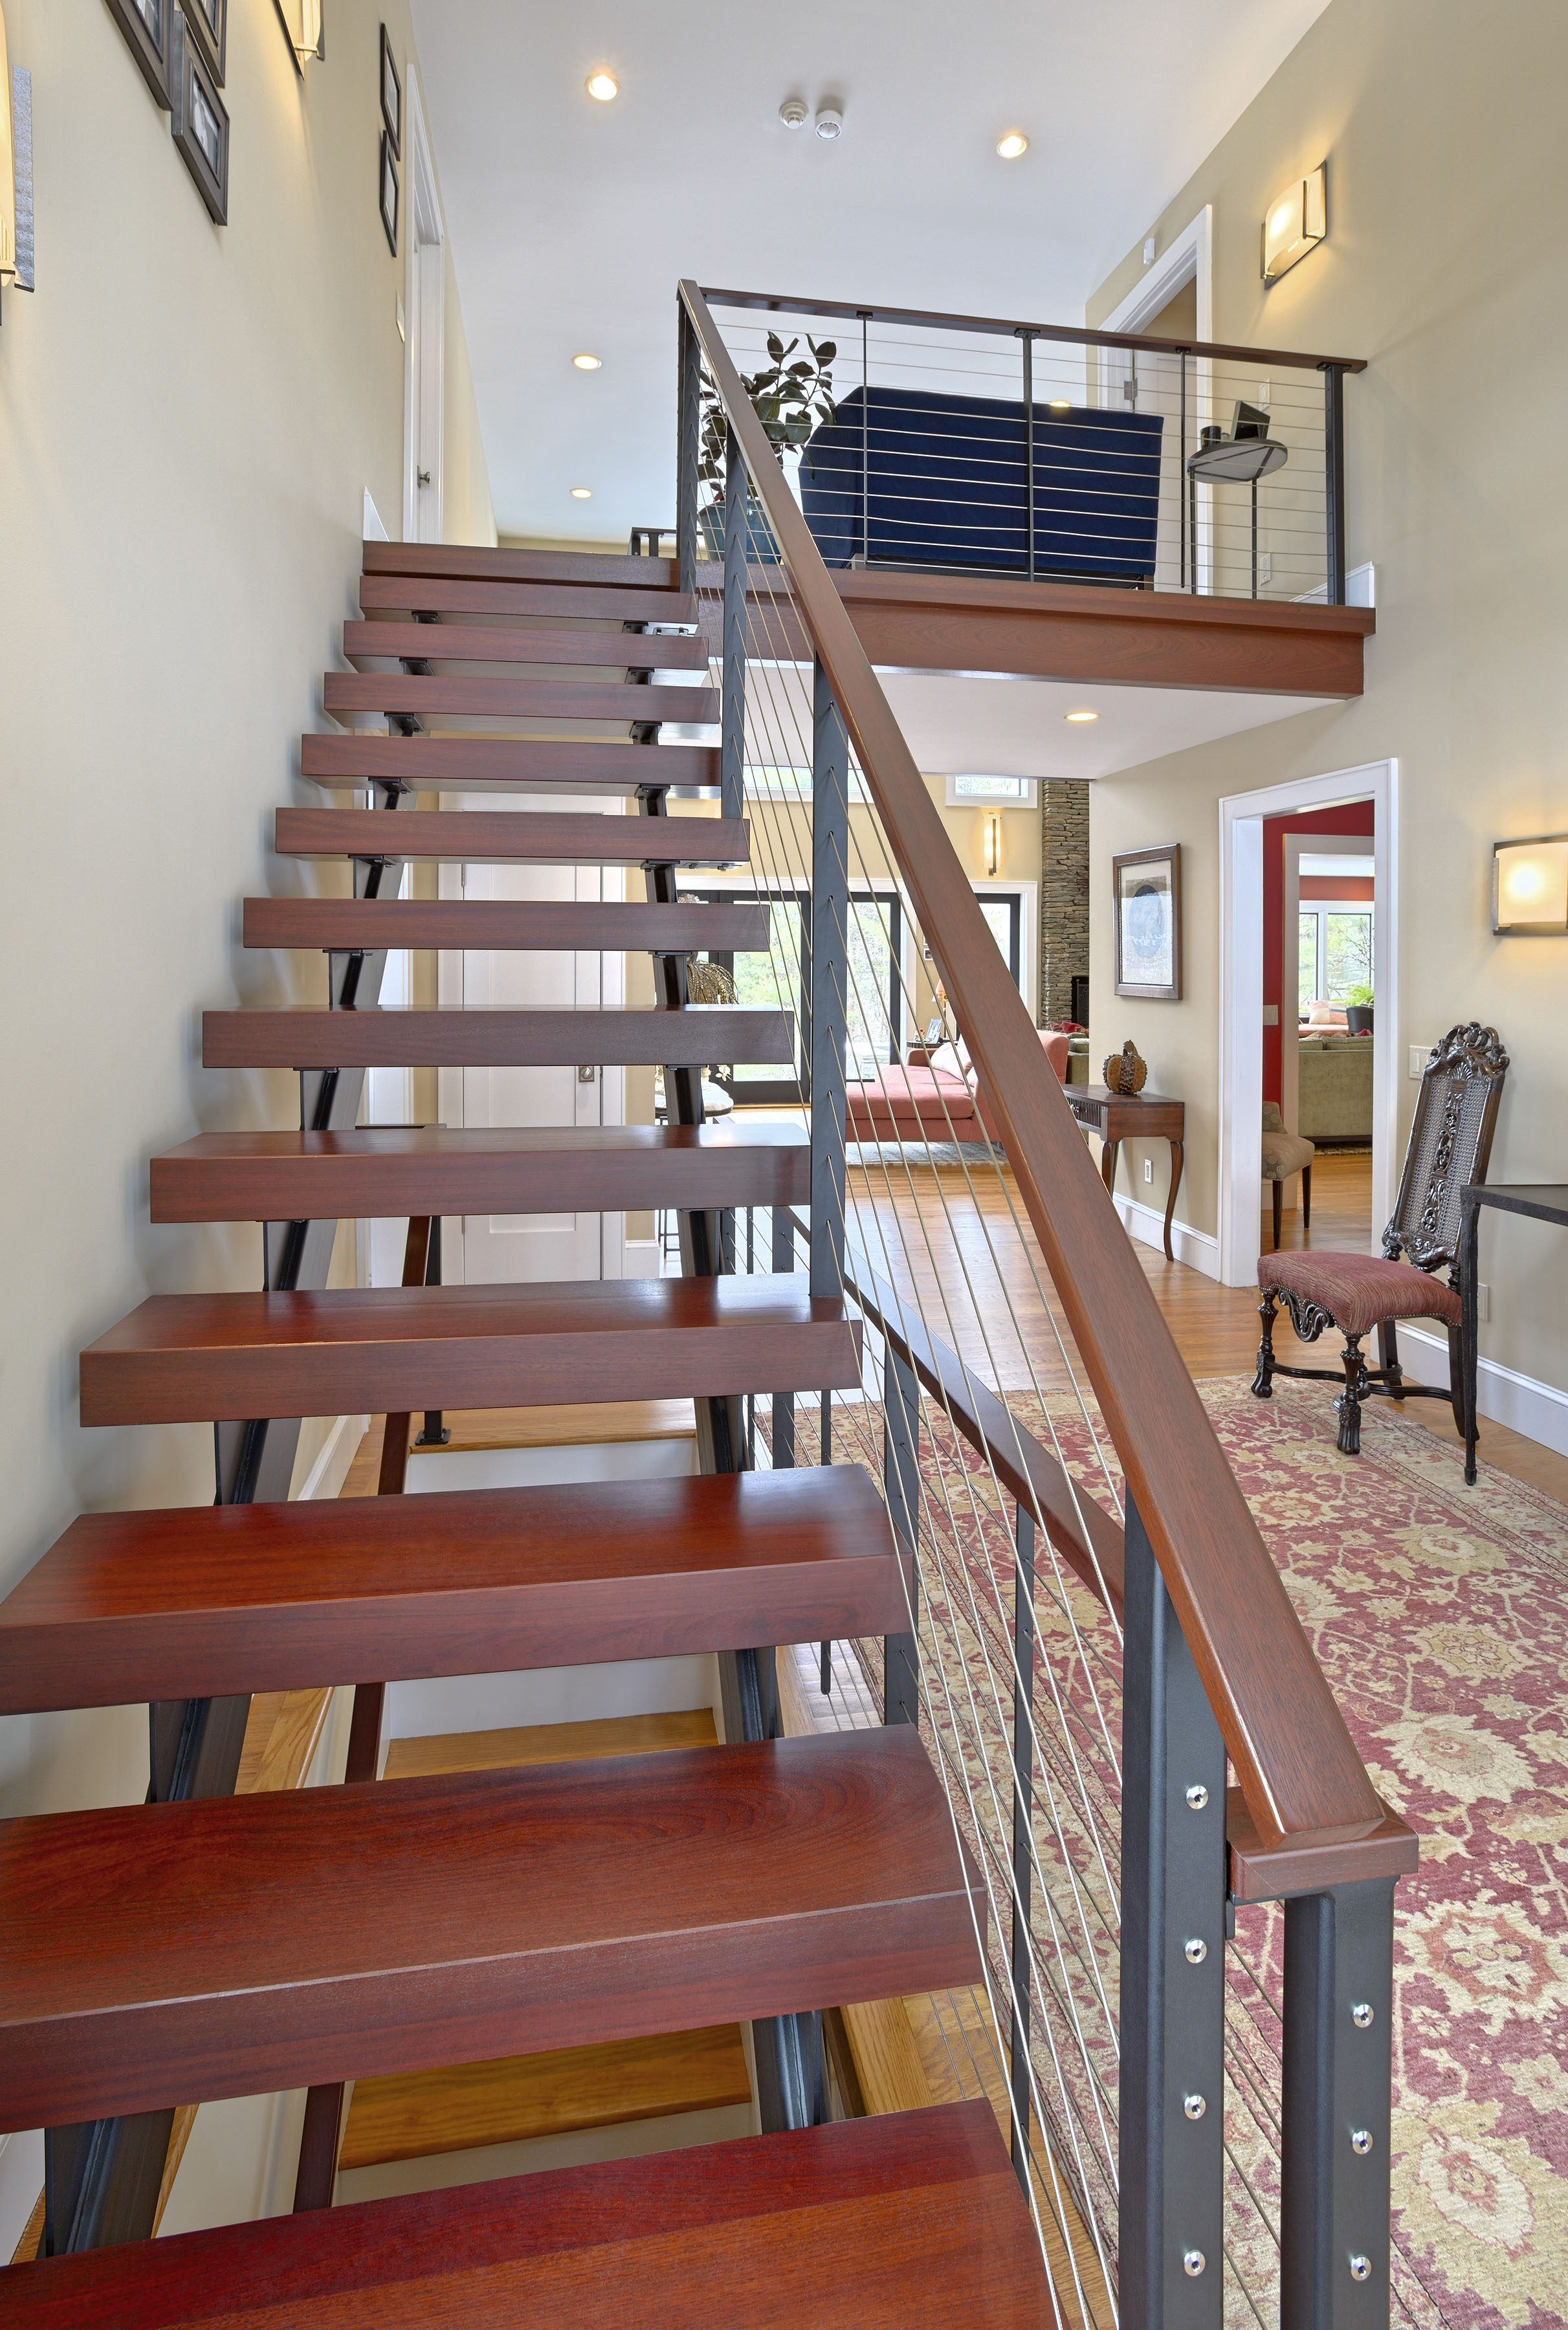 Double stringer floating staircase with cable railing and wood treads